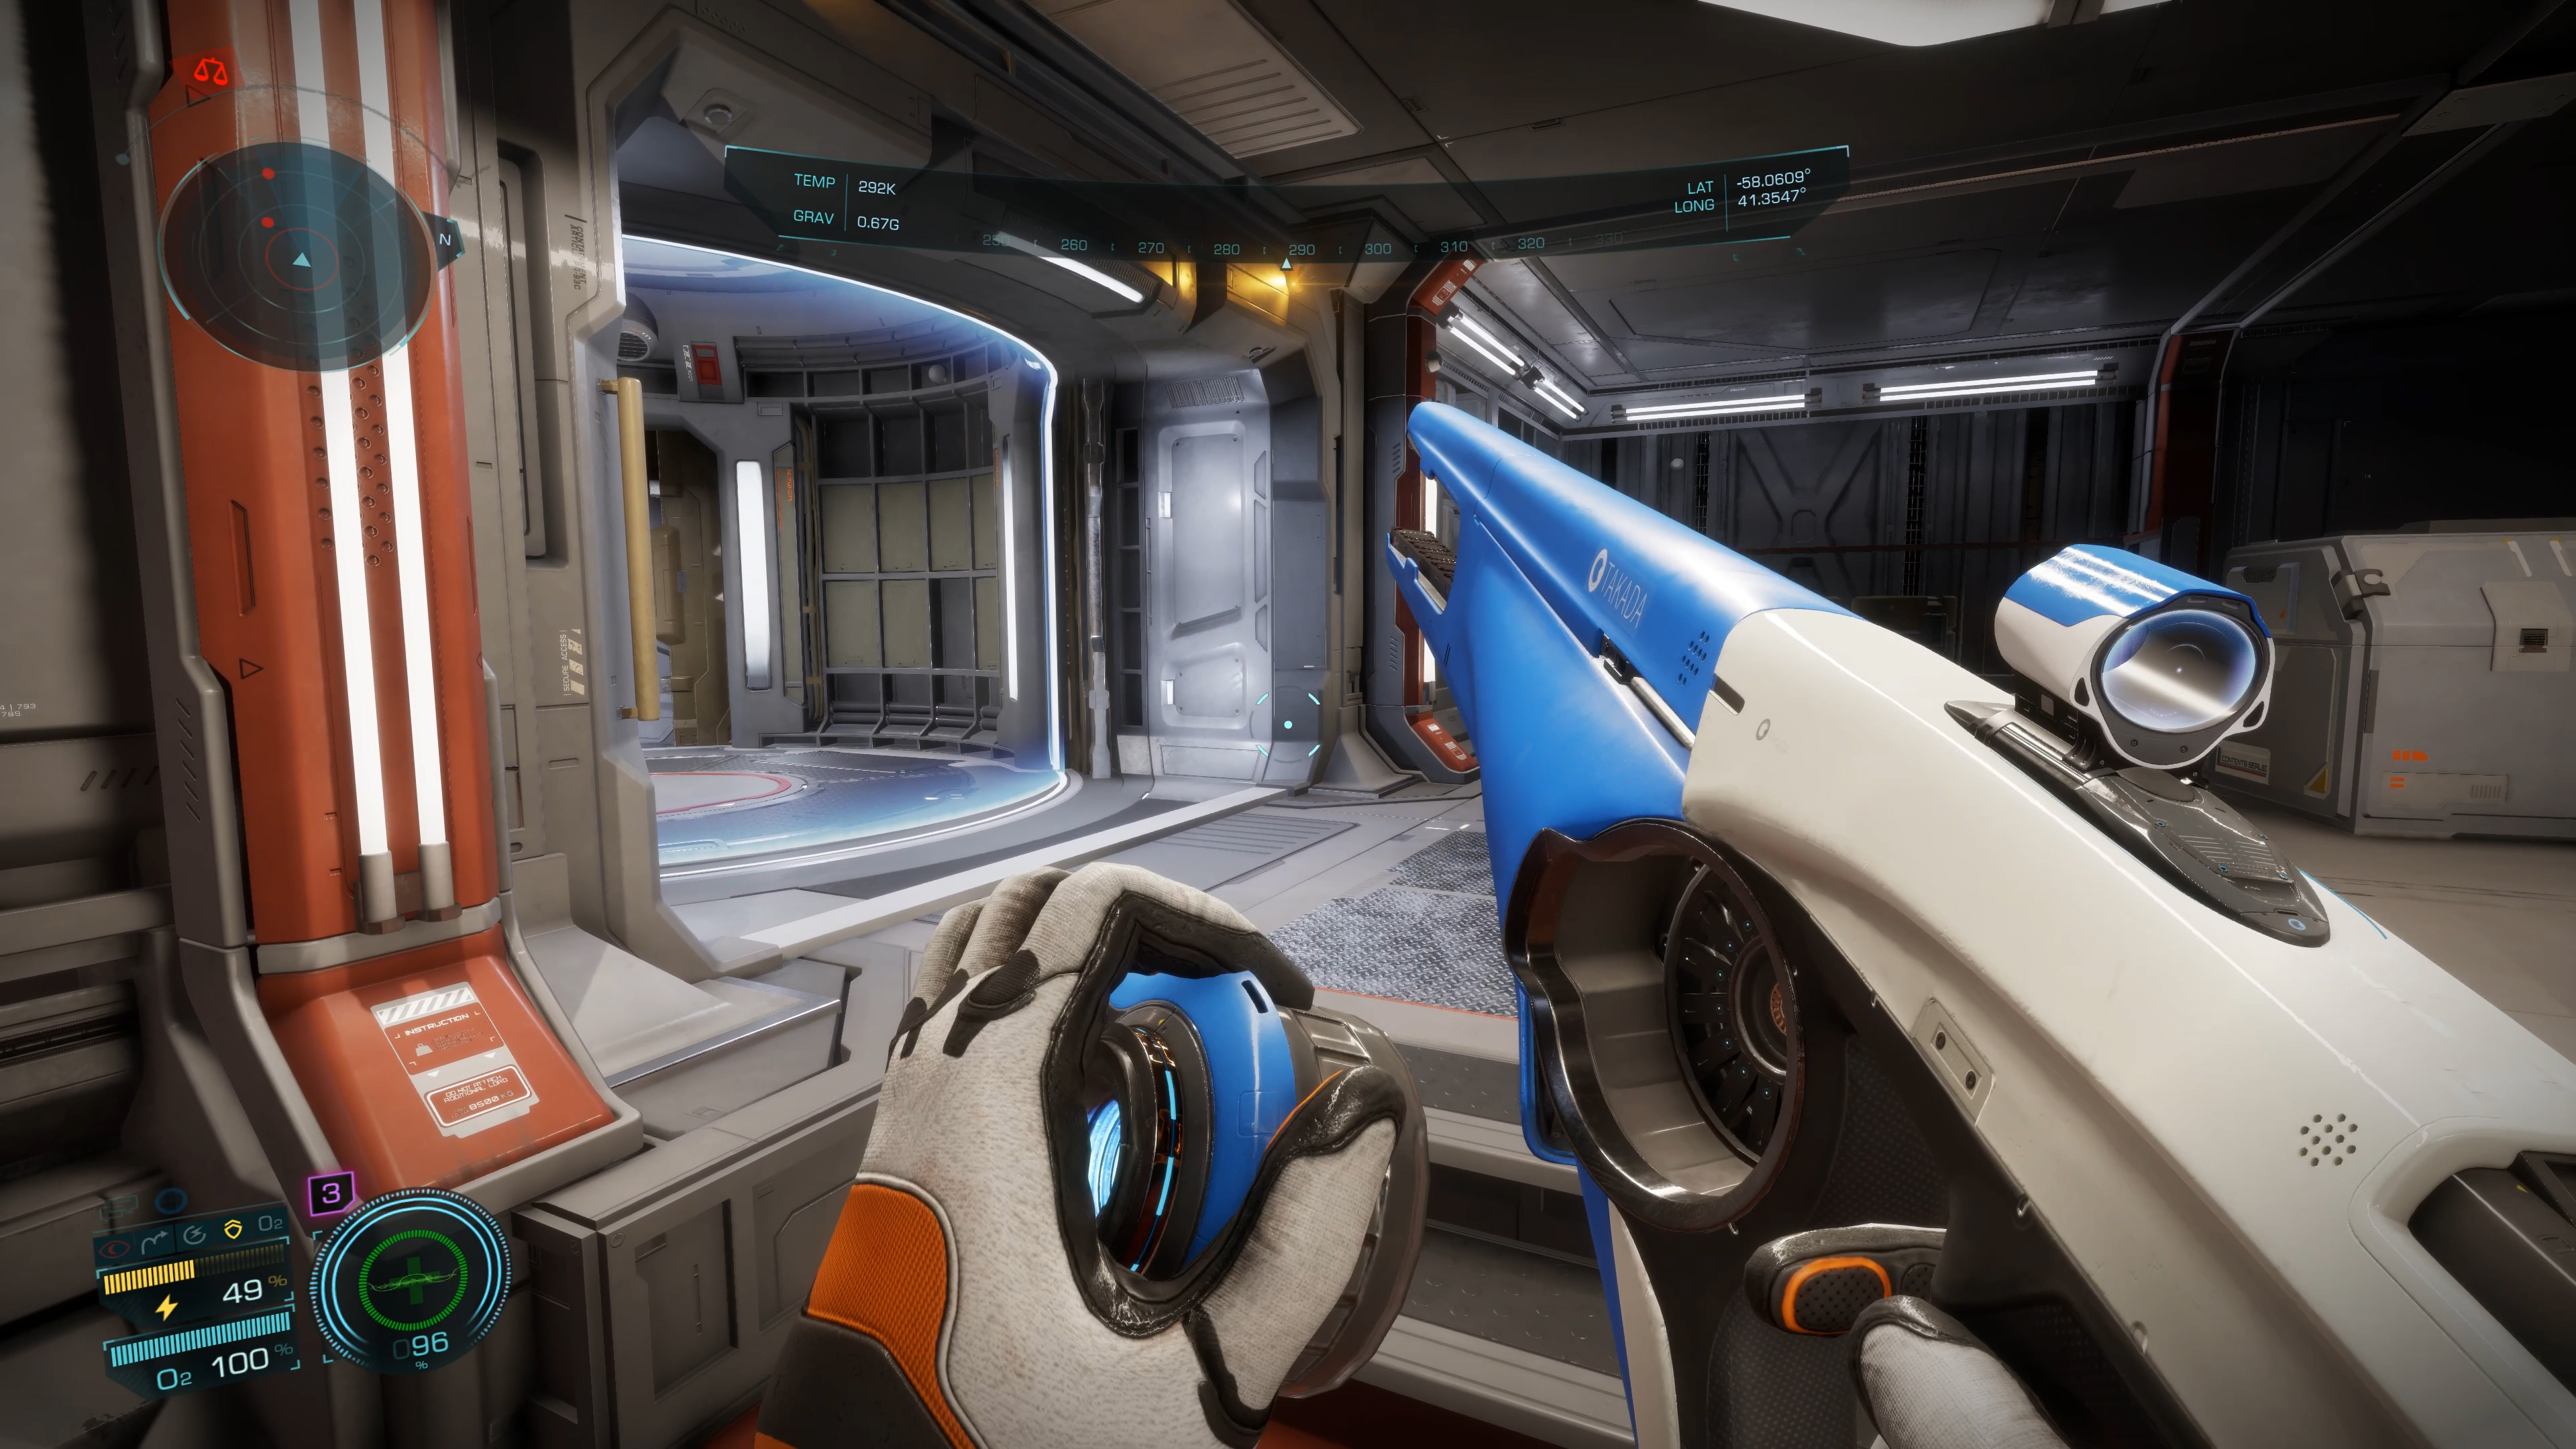 A player in Elite Dangerous: Odyssey reloads a weapon, white and sleek as anything flown by the Empire.